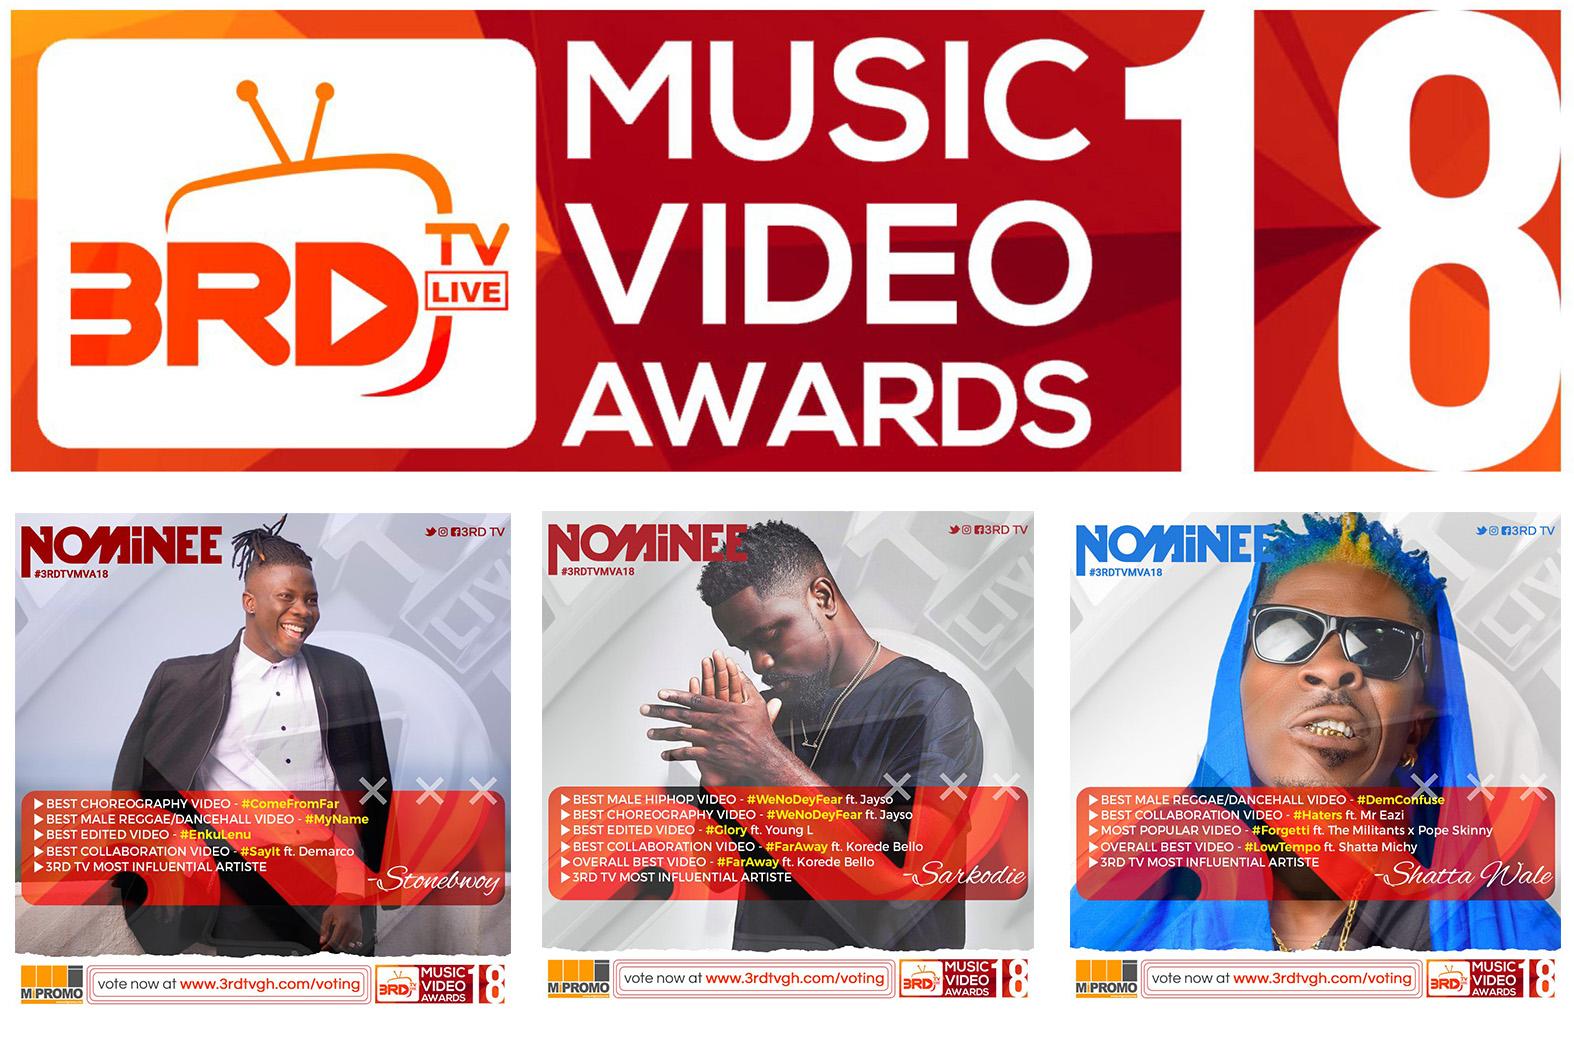 Stonebwoy & Sarkodie lead nominees for 2018 3RD TV Music